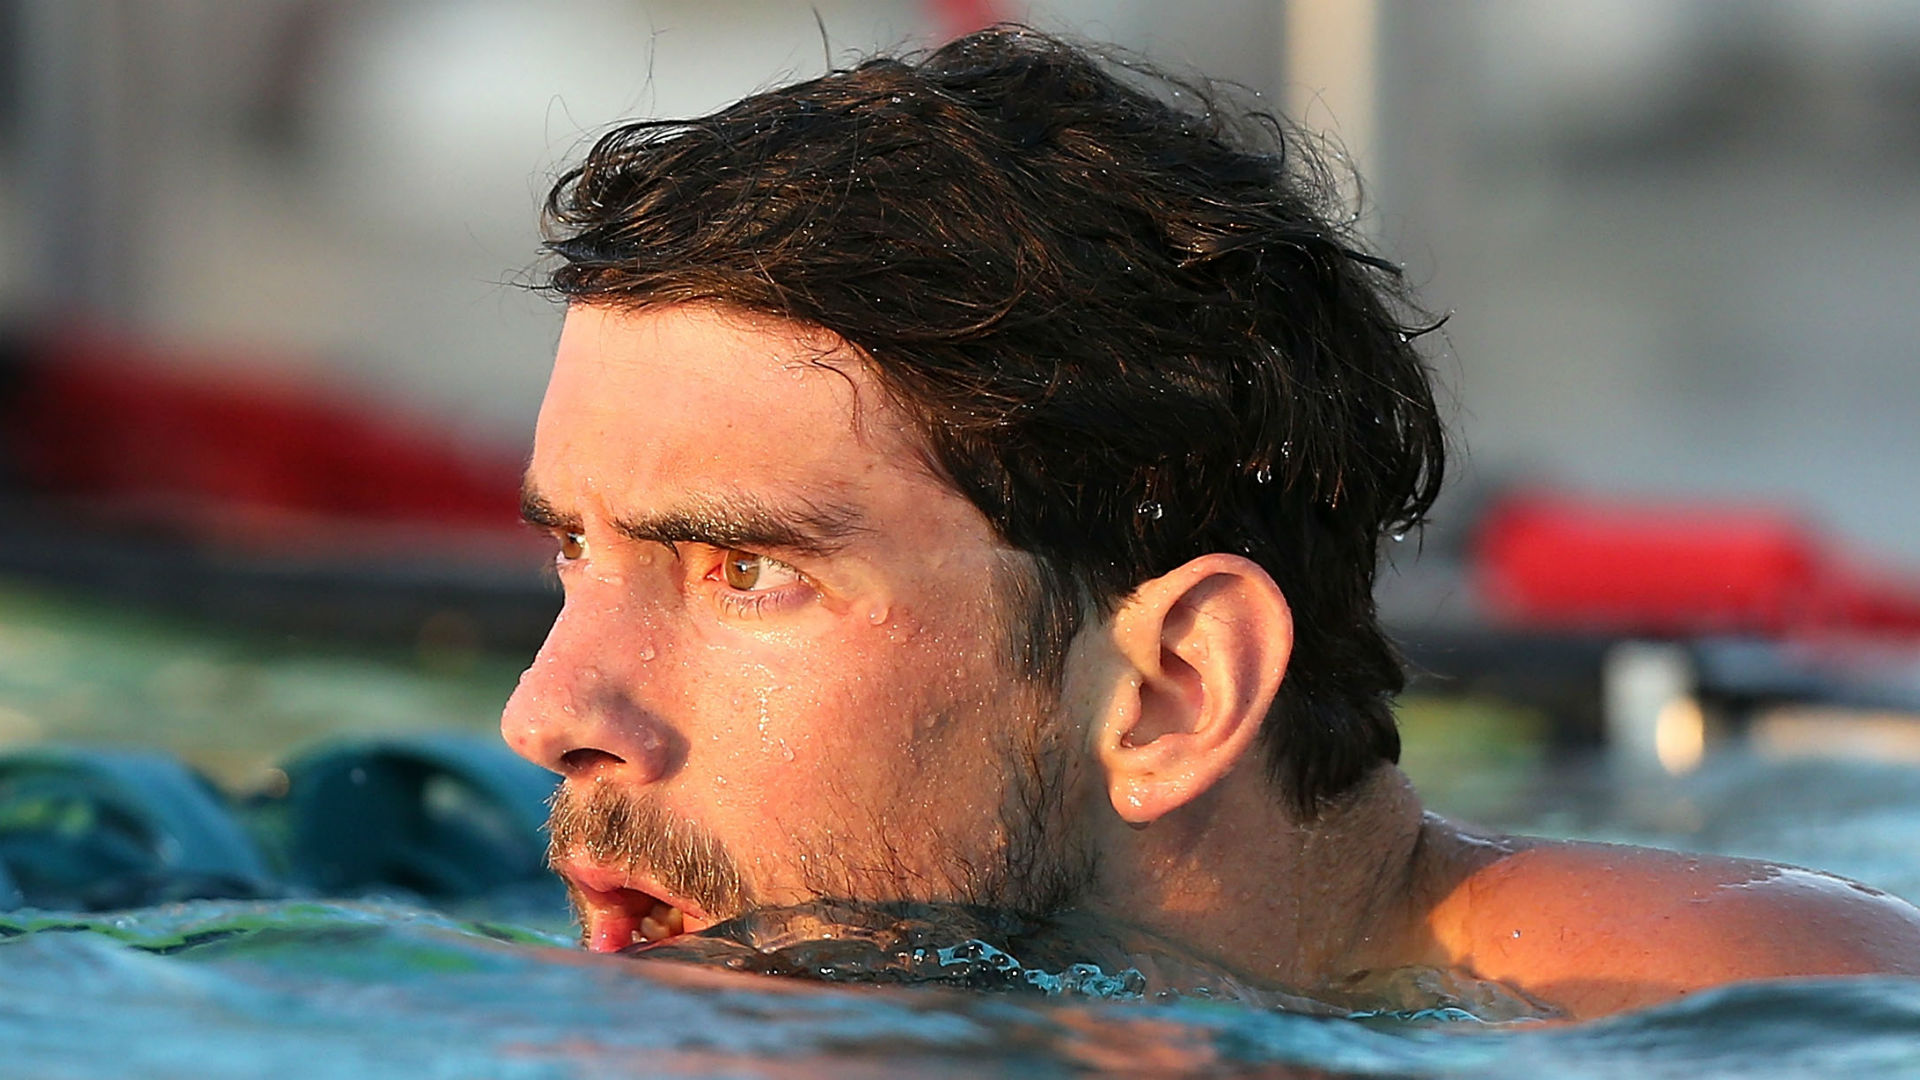 Michael Phelps opens up about depression, says he thought about killing himself after Olympics